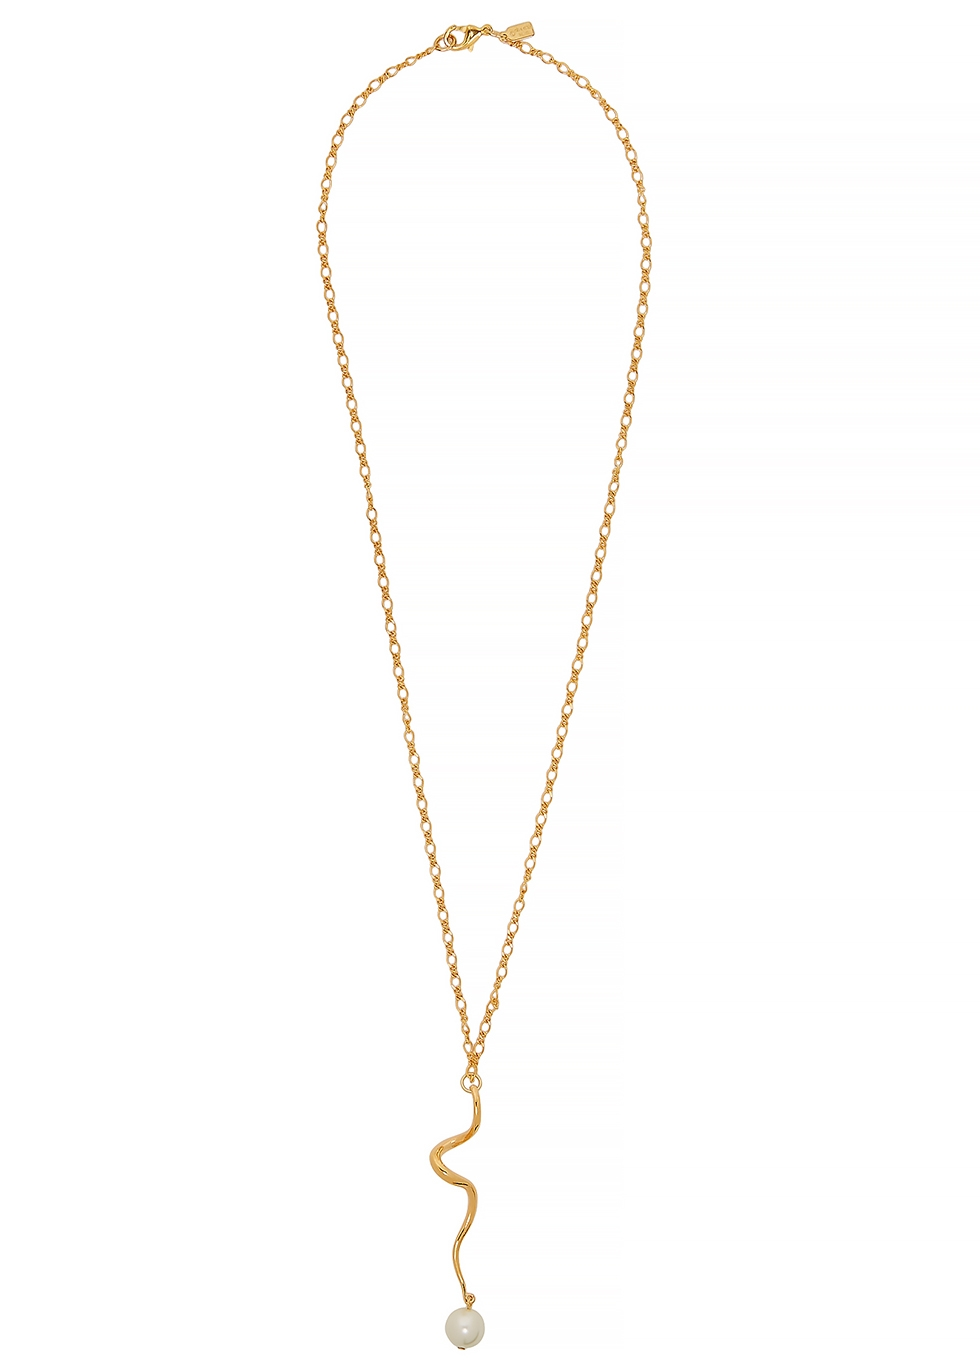 KENNETH JAY LANE | Kenneth Jay Lane Gold-Tone Chain Necklace | Goxip